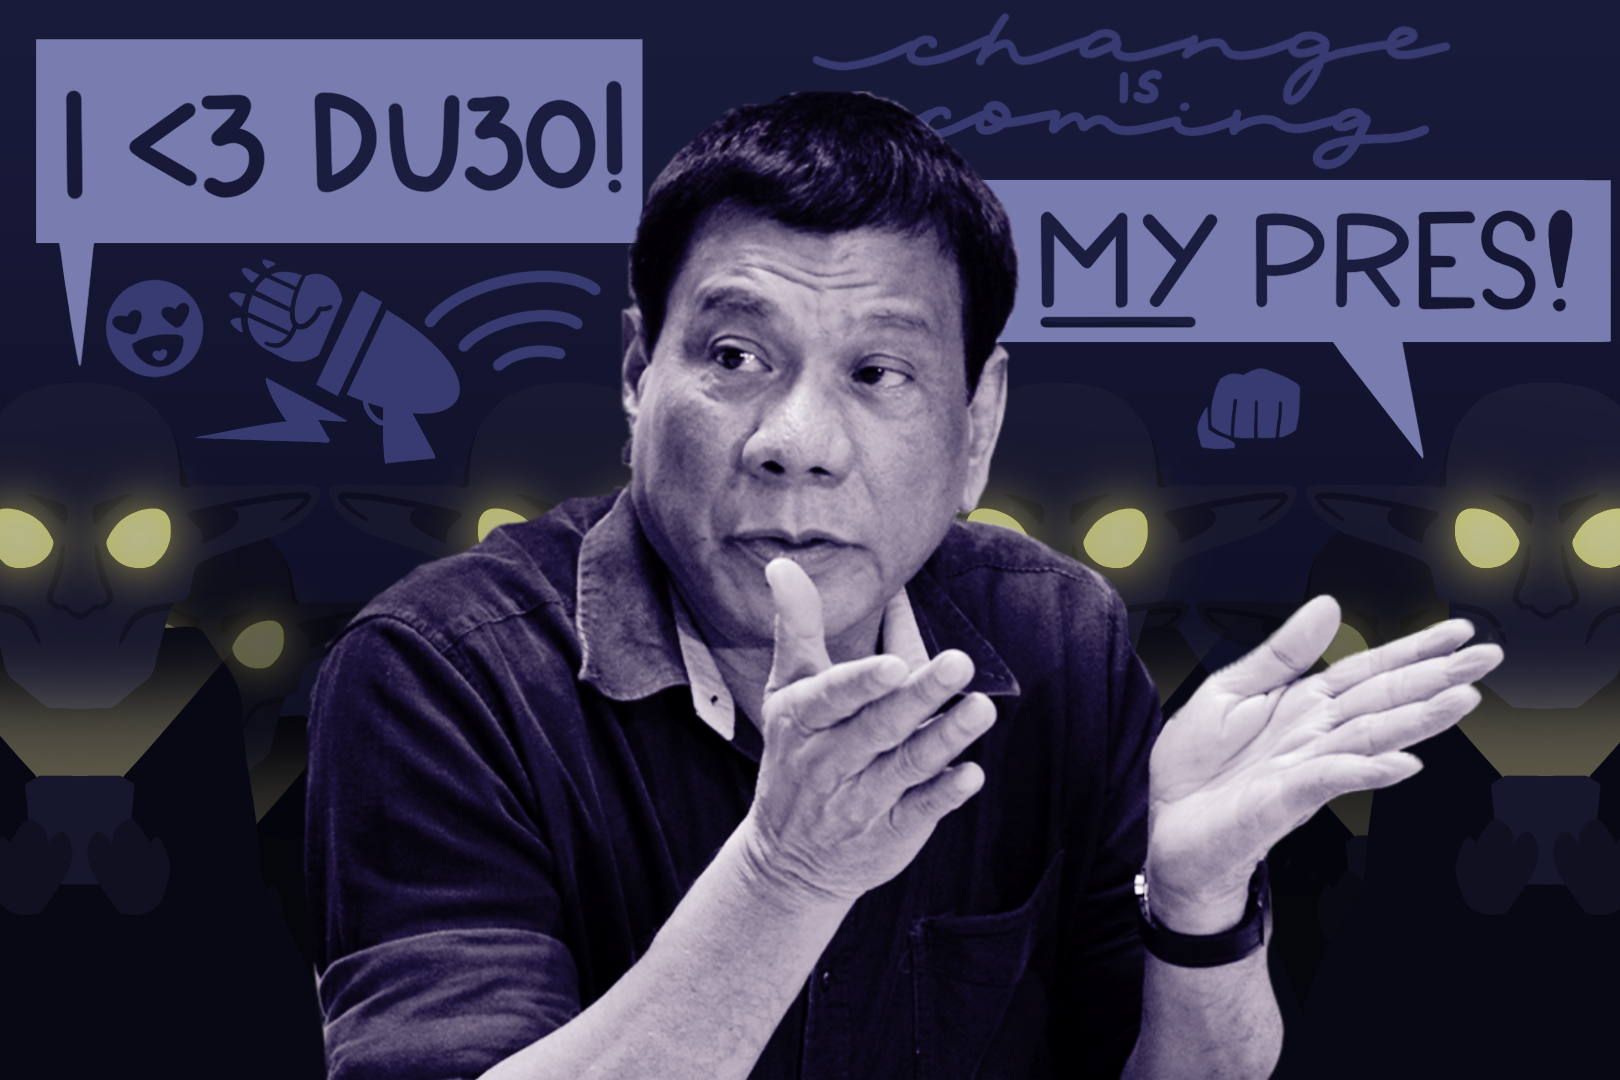 DU30's 2016 prexy bid and the art of hard selling